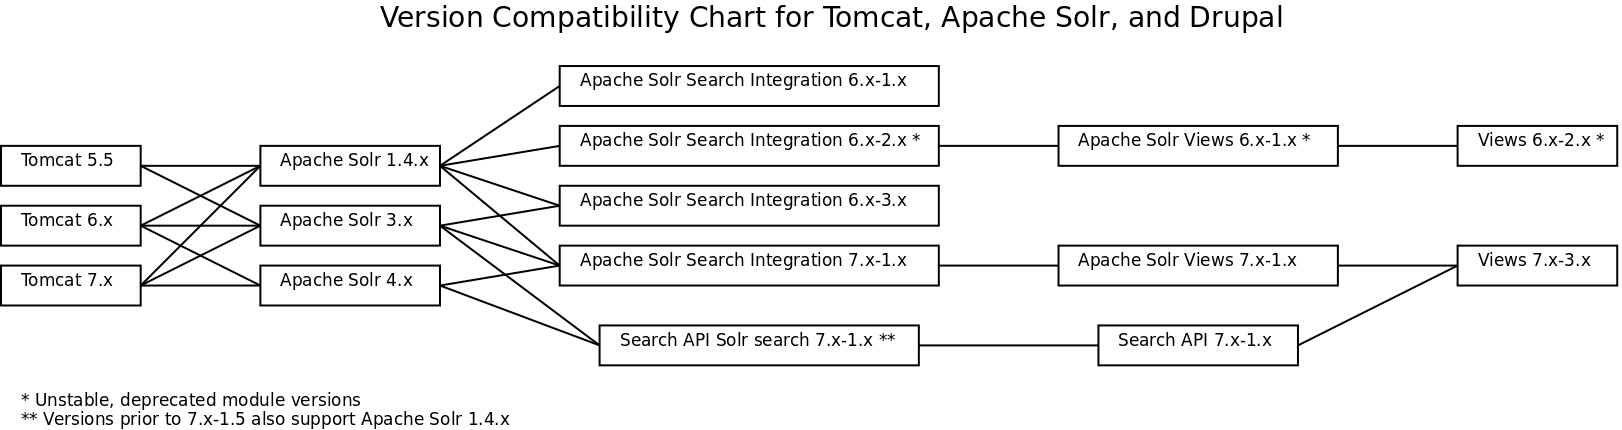 Tomcat, Apache Solr, and Drupal version compatability table